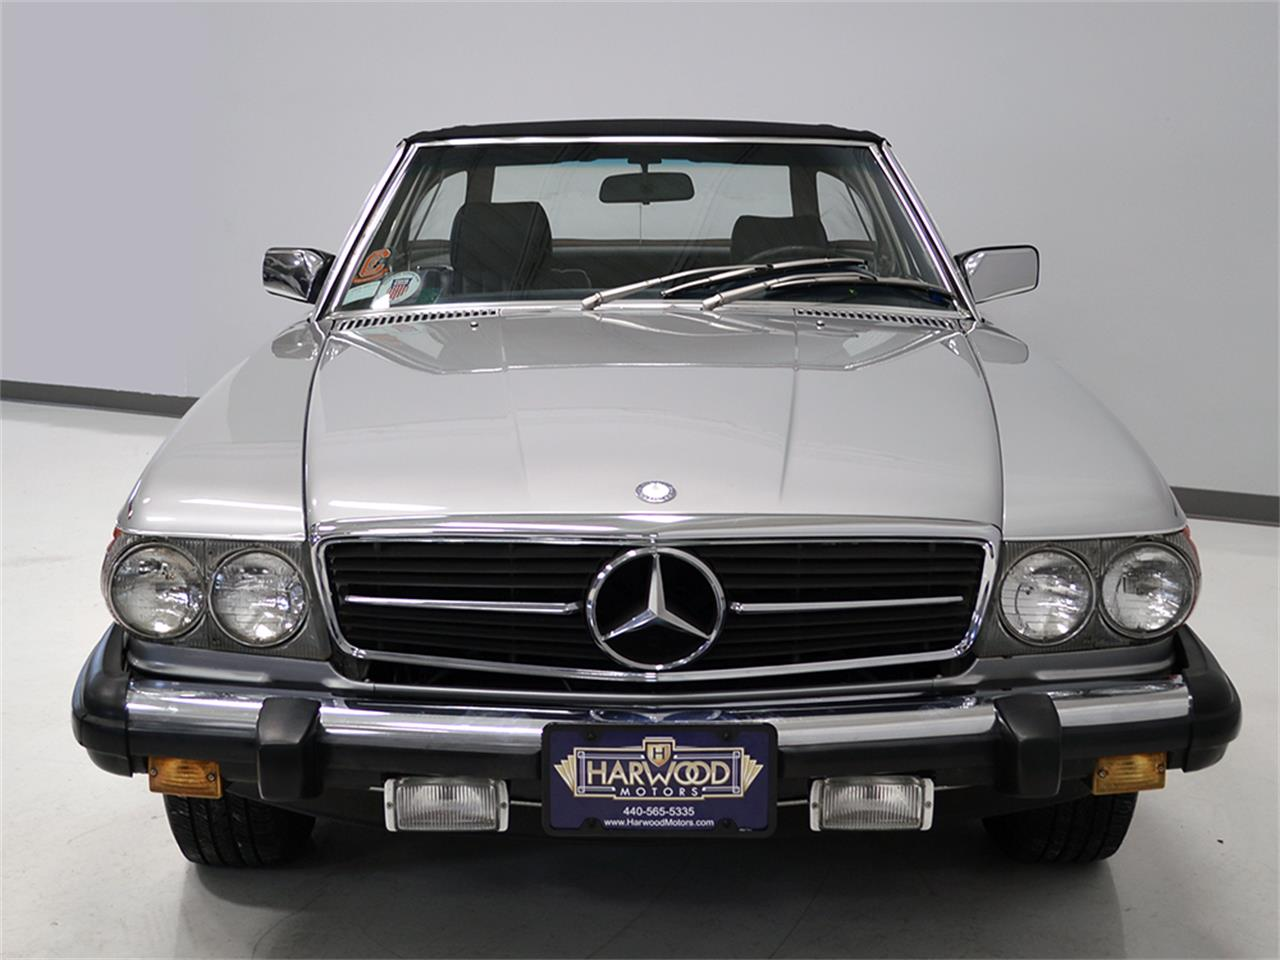 Large Picture of 1984 Mercedes-Benz 380SL located in Macedonia Ohio - $17,900.00 Offered by Harwood Motors, LTD. - KA2F